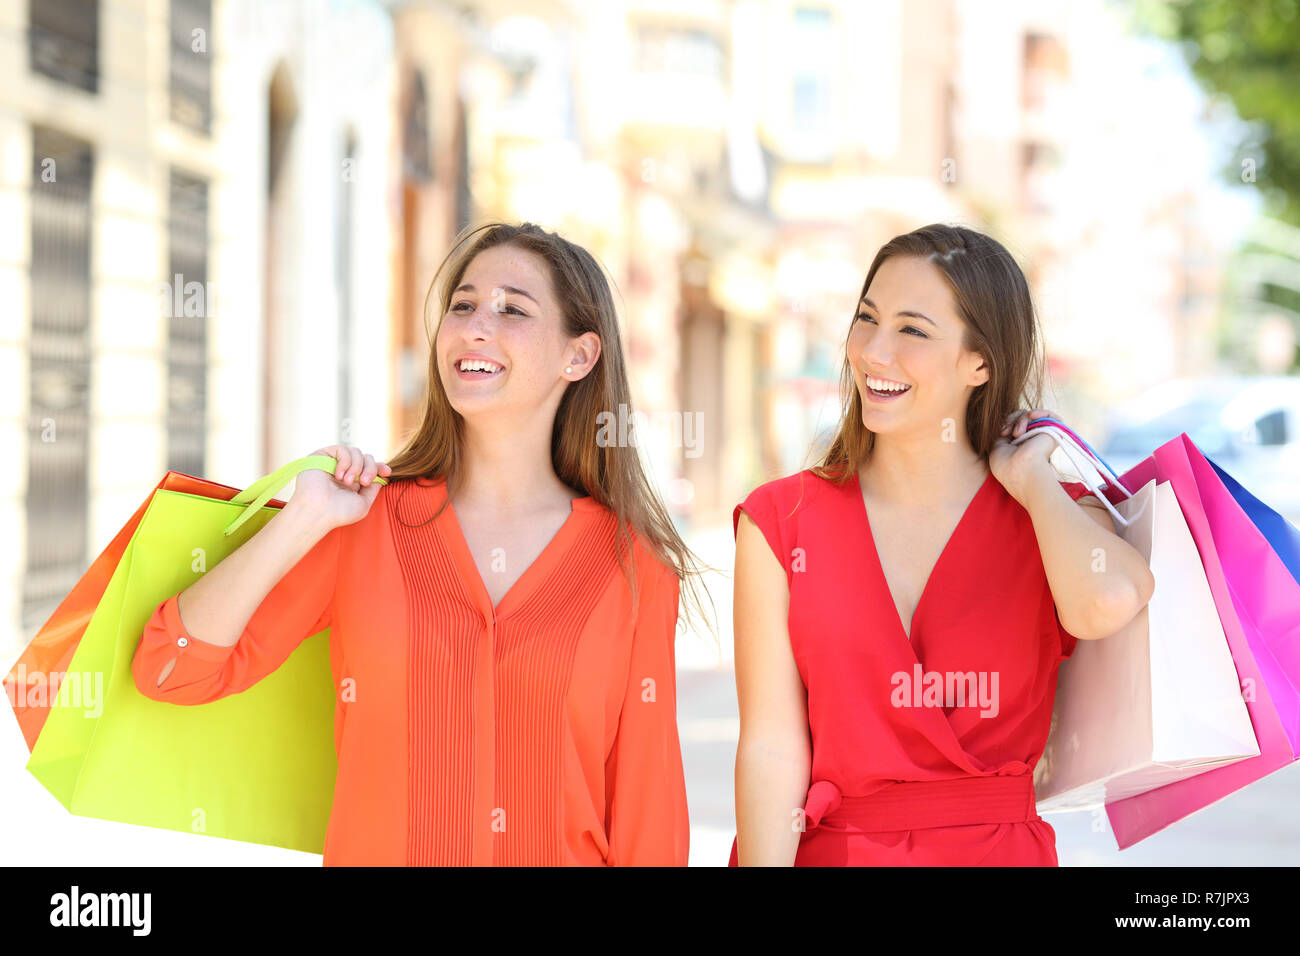 Front view portrait of two happy shoppers walking in an old town street holding shopping bags - Stock Image